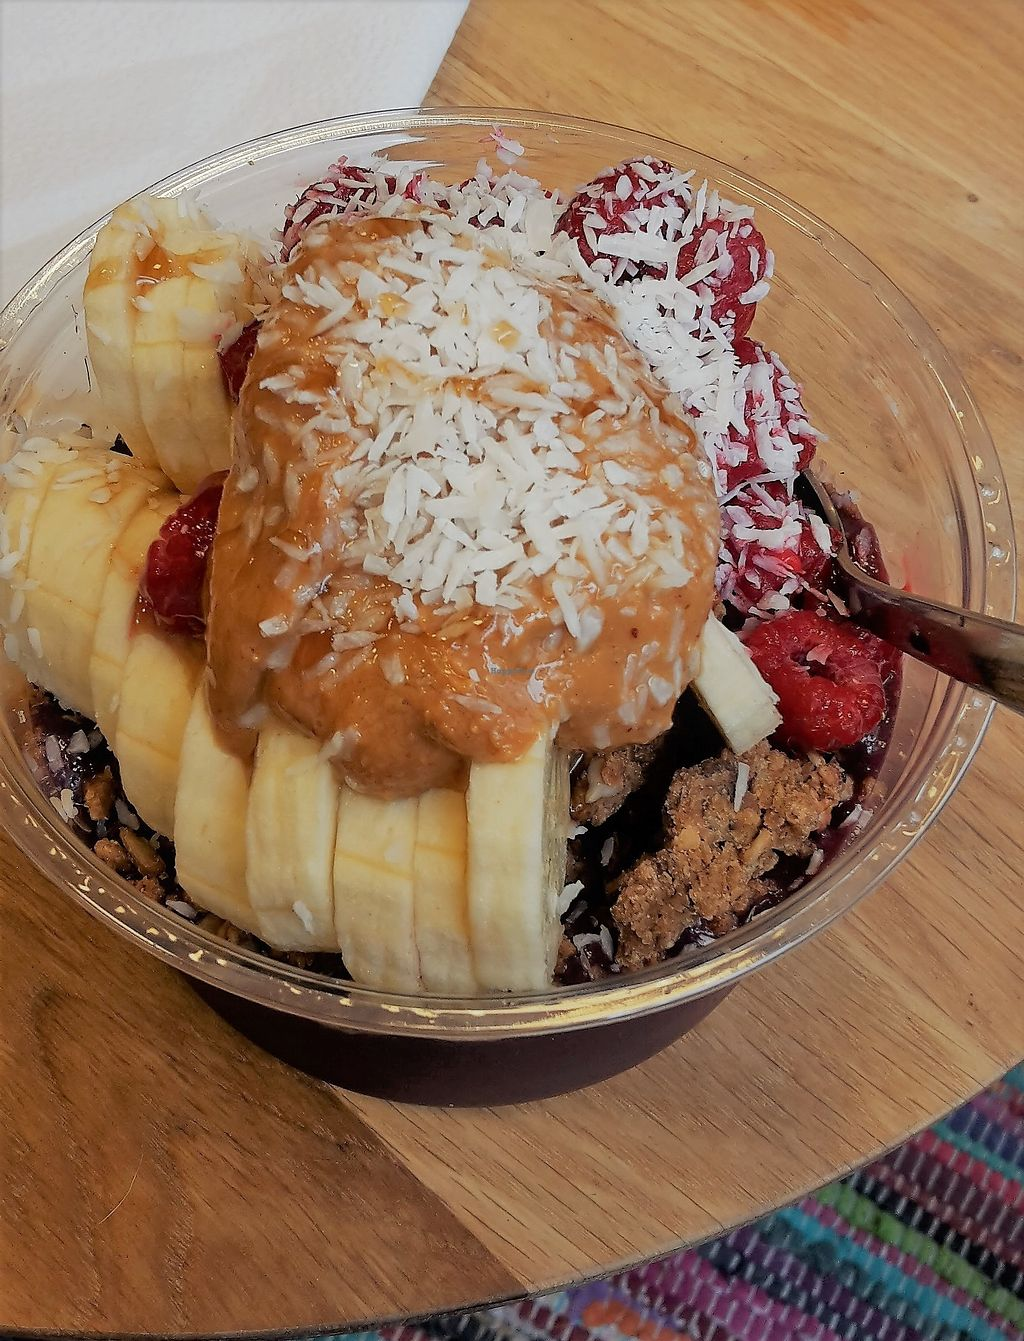 """Photo of Lotta Love  by <a href=""""/members/profile/vegankiwis"""">vegankiwis</a> <br/>Classic acai bowl - delicious! <br/> June 30, 2017  - <a href='/contact/abuse/image/53915/275055'>Report</a>"""